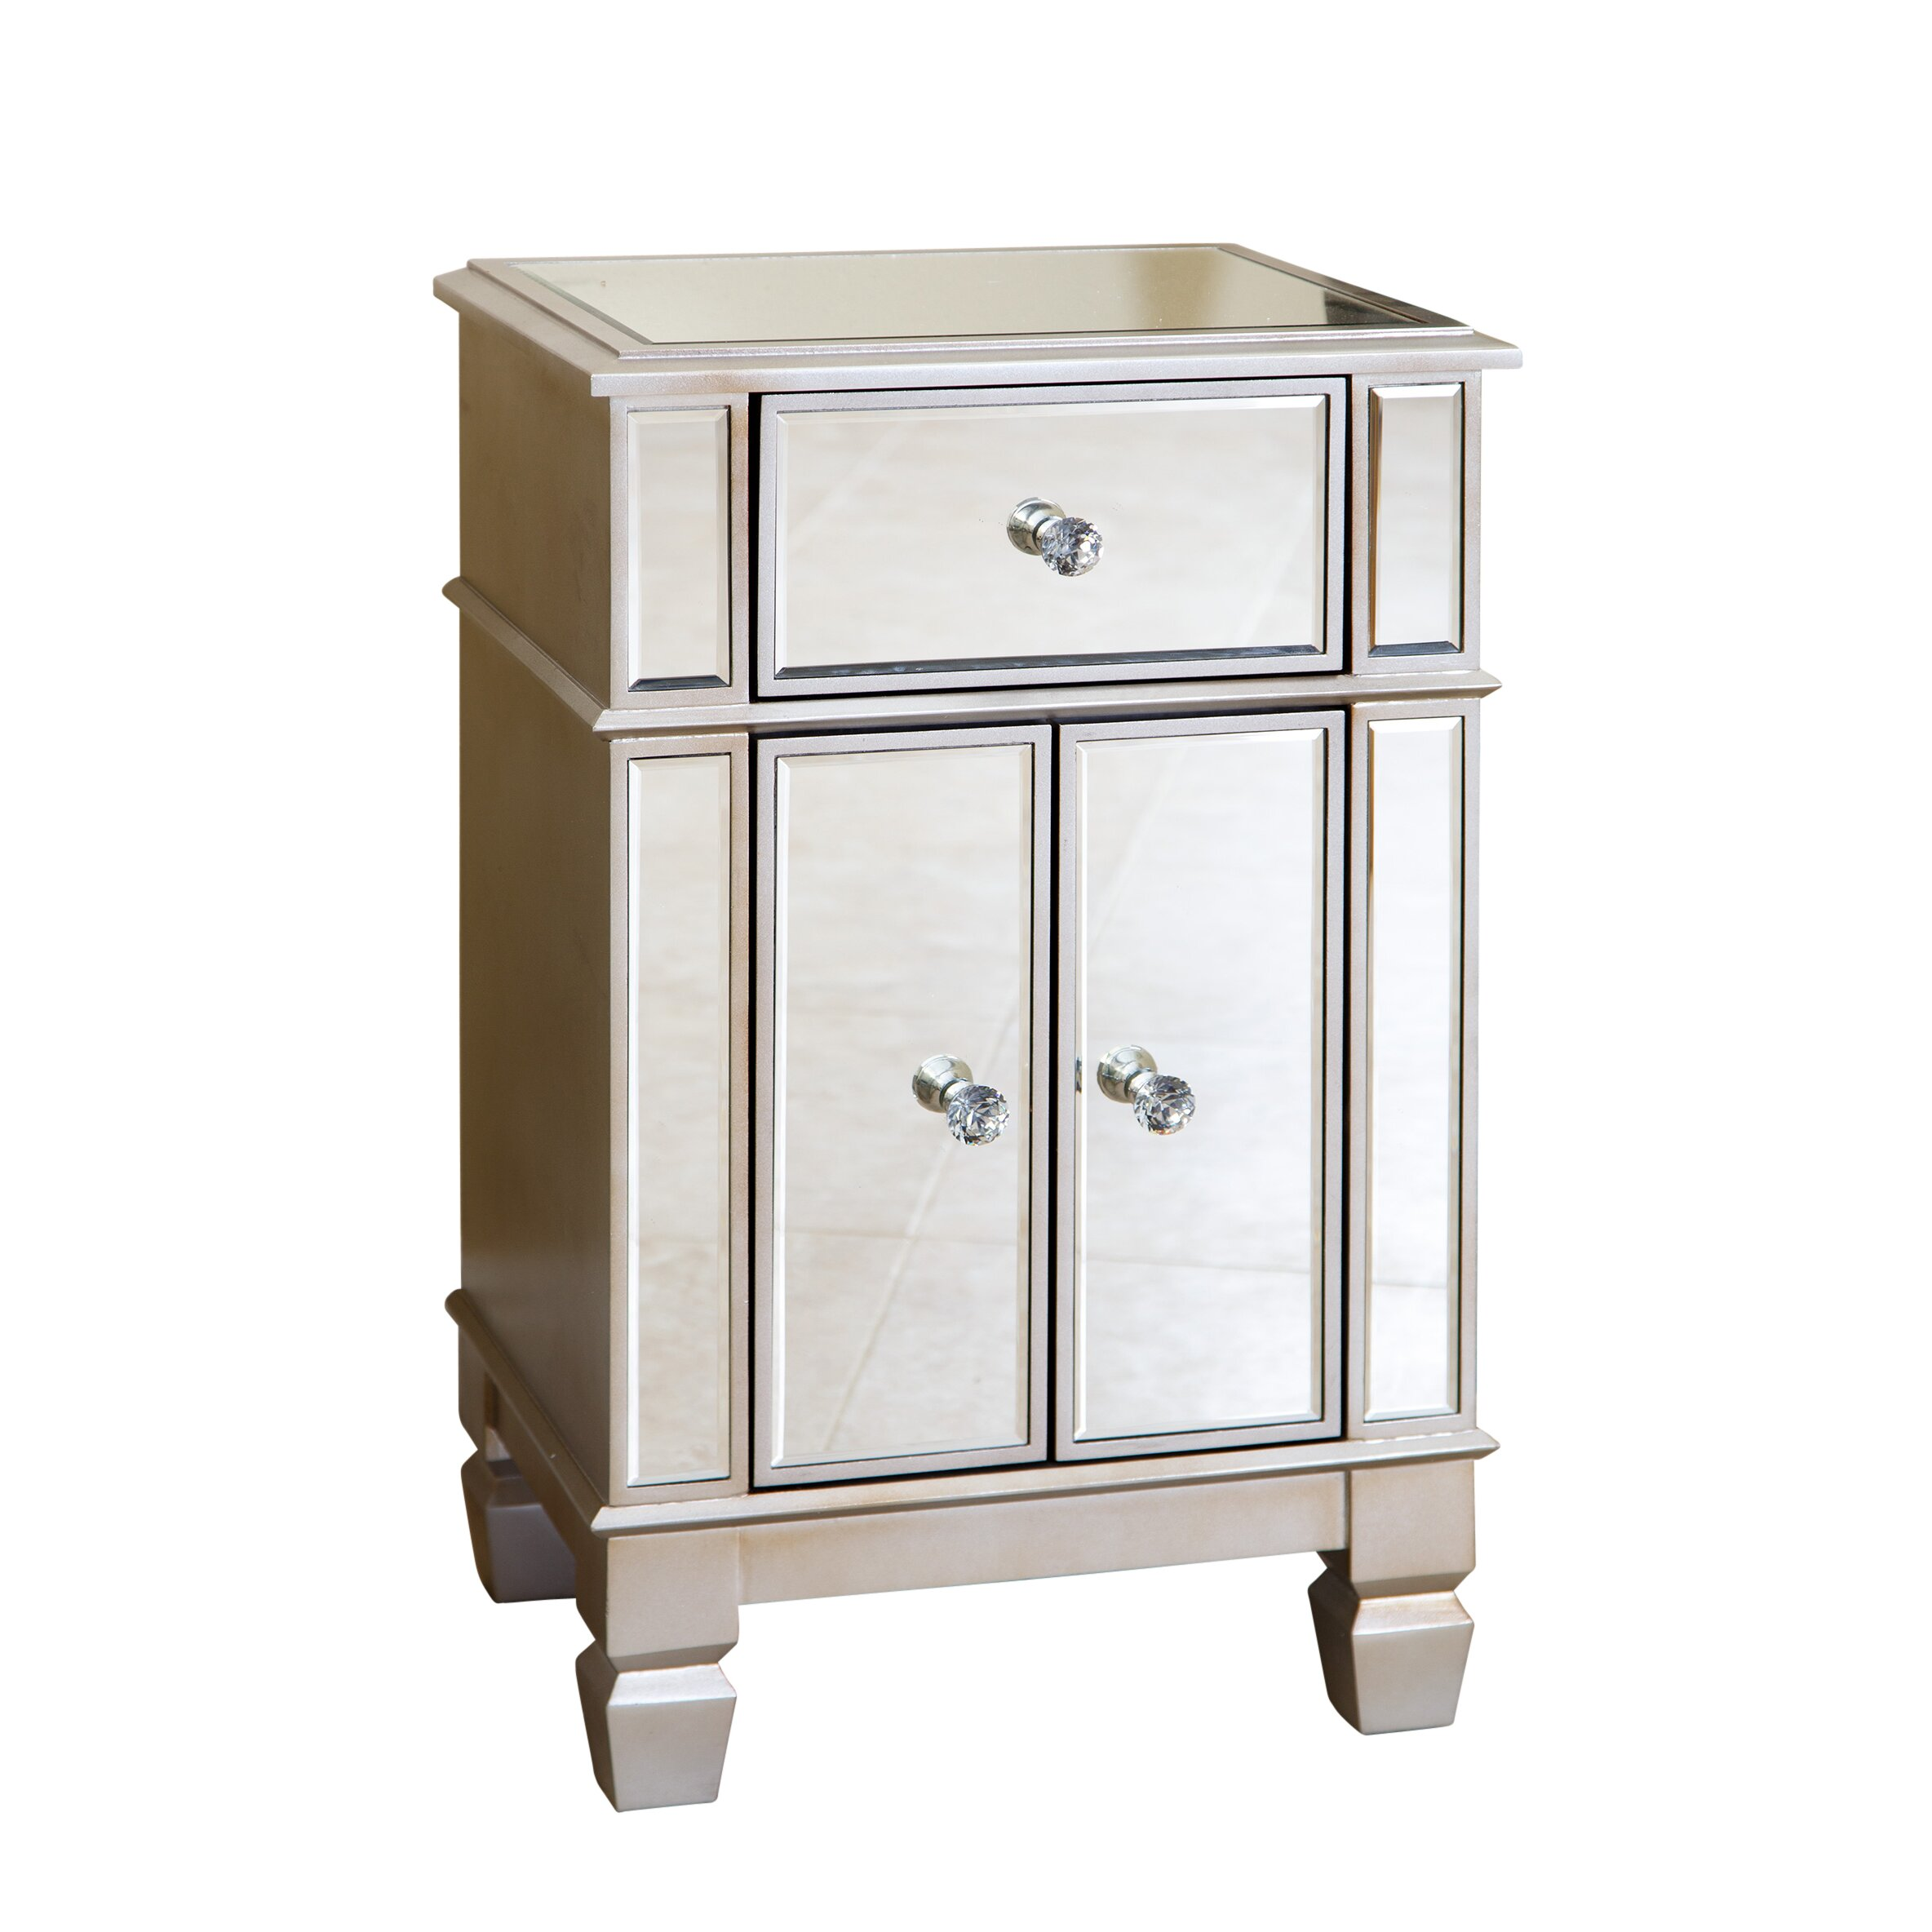 whitney mirrored accent chest  joss  main - house of hampton whitney mirrored accent chest